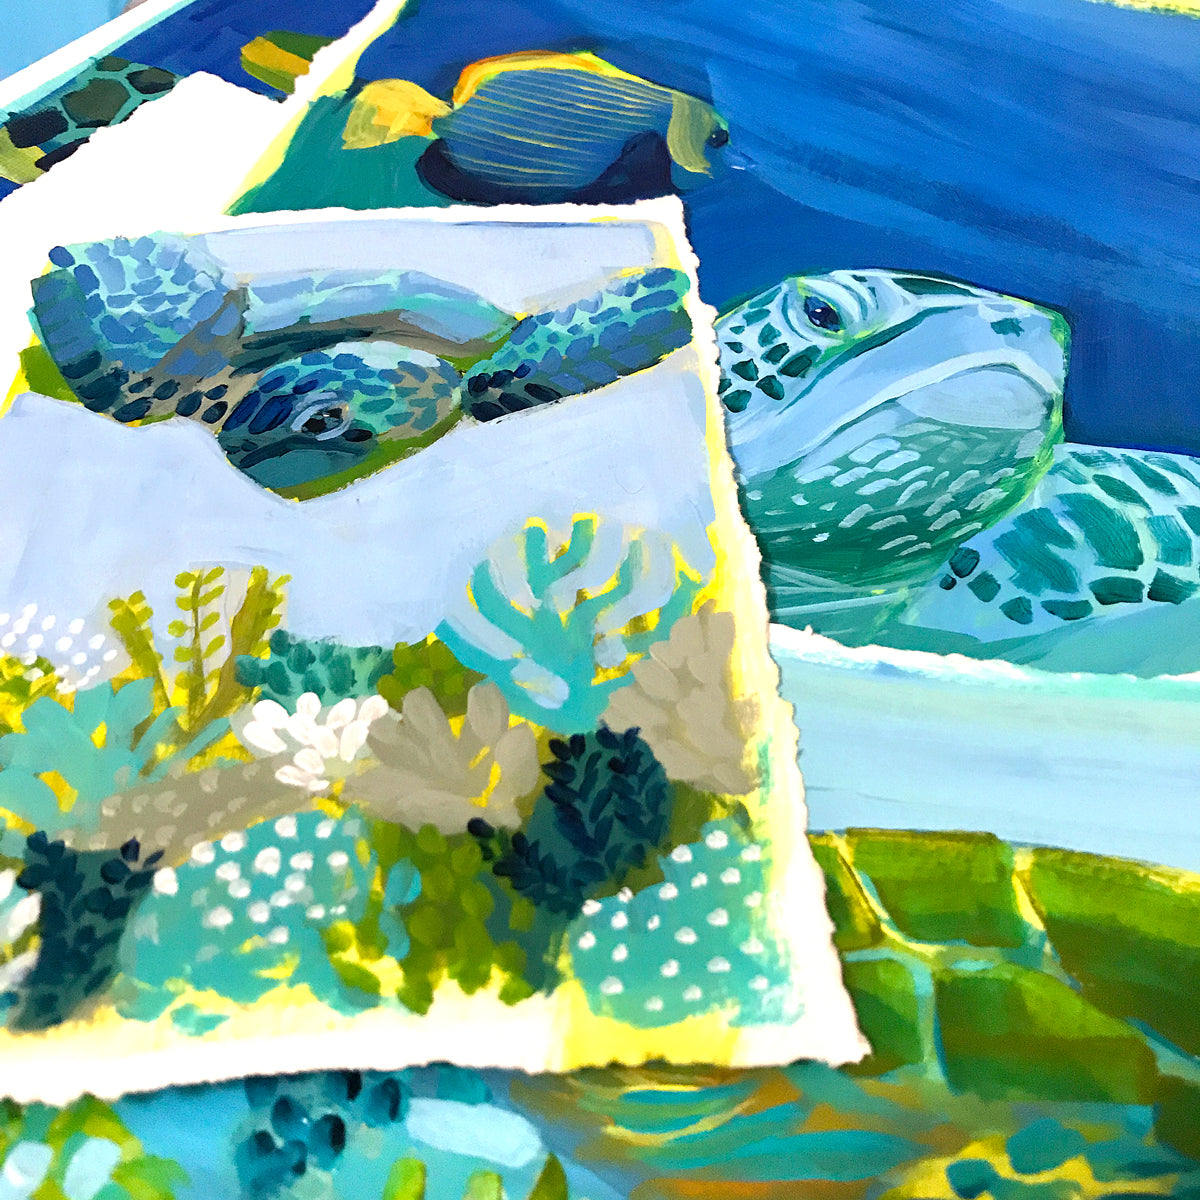 Acrylic Sketches for Save the Sea Turtles Collection by Dora Knuteson